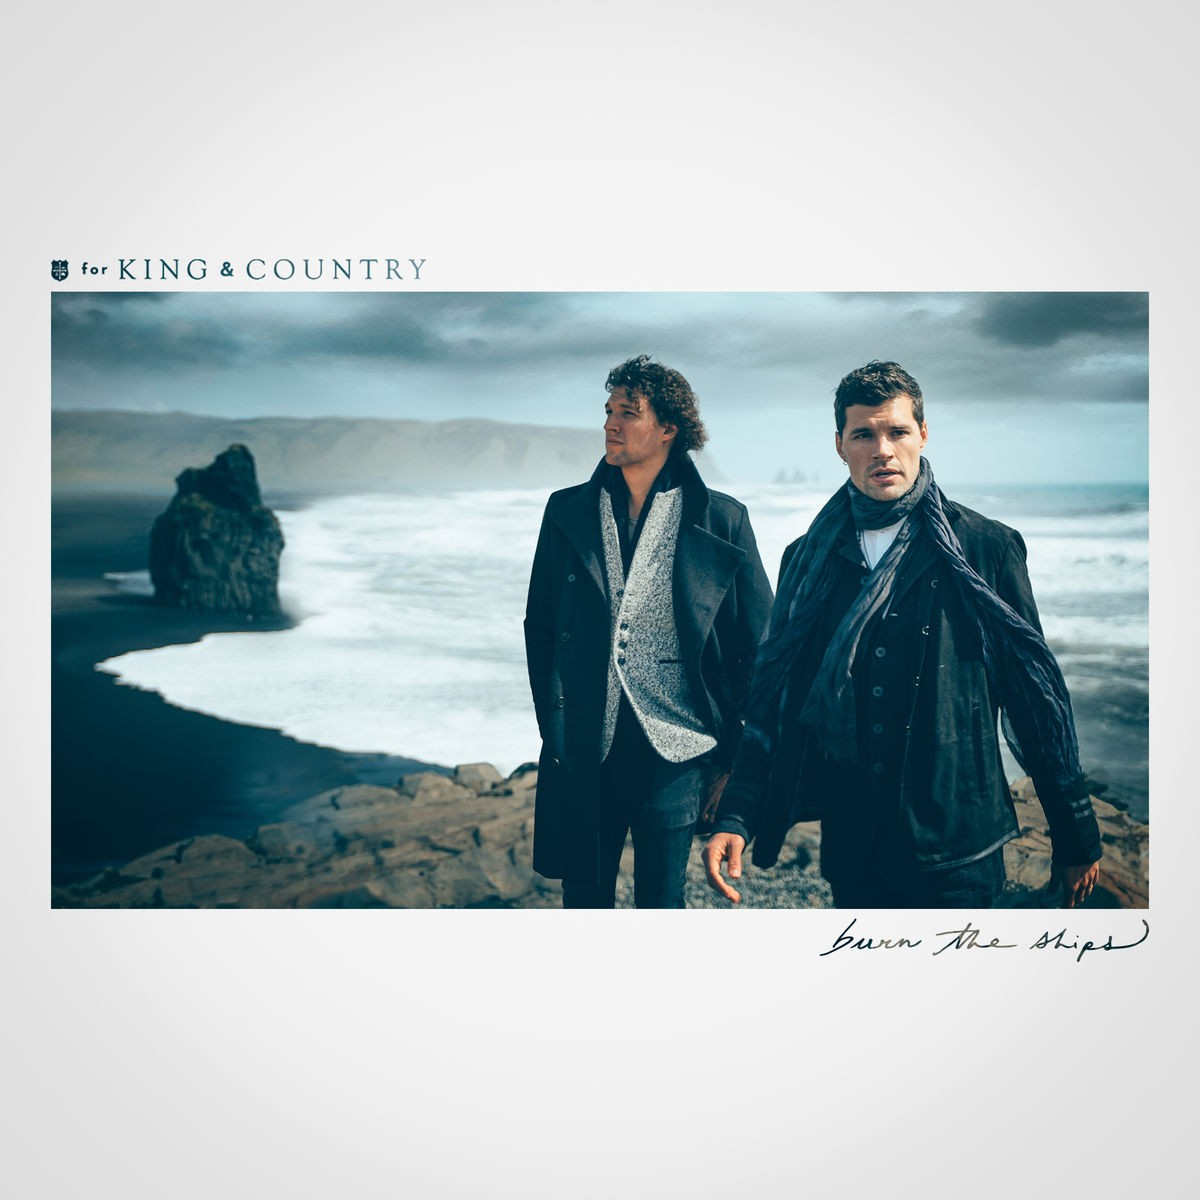 For King & Country - Burn The Ships CD - 80688962425